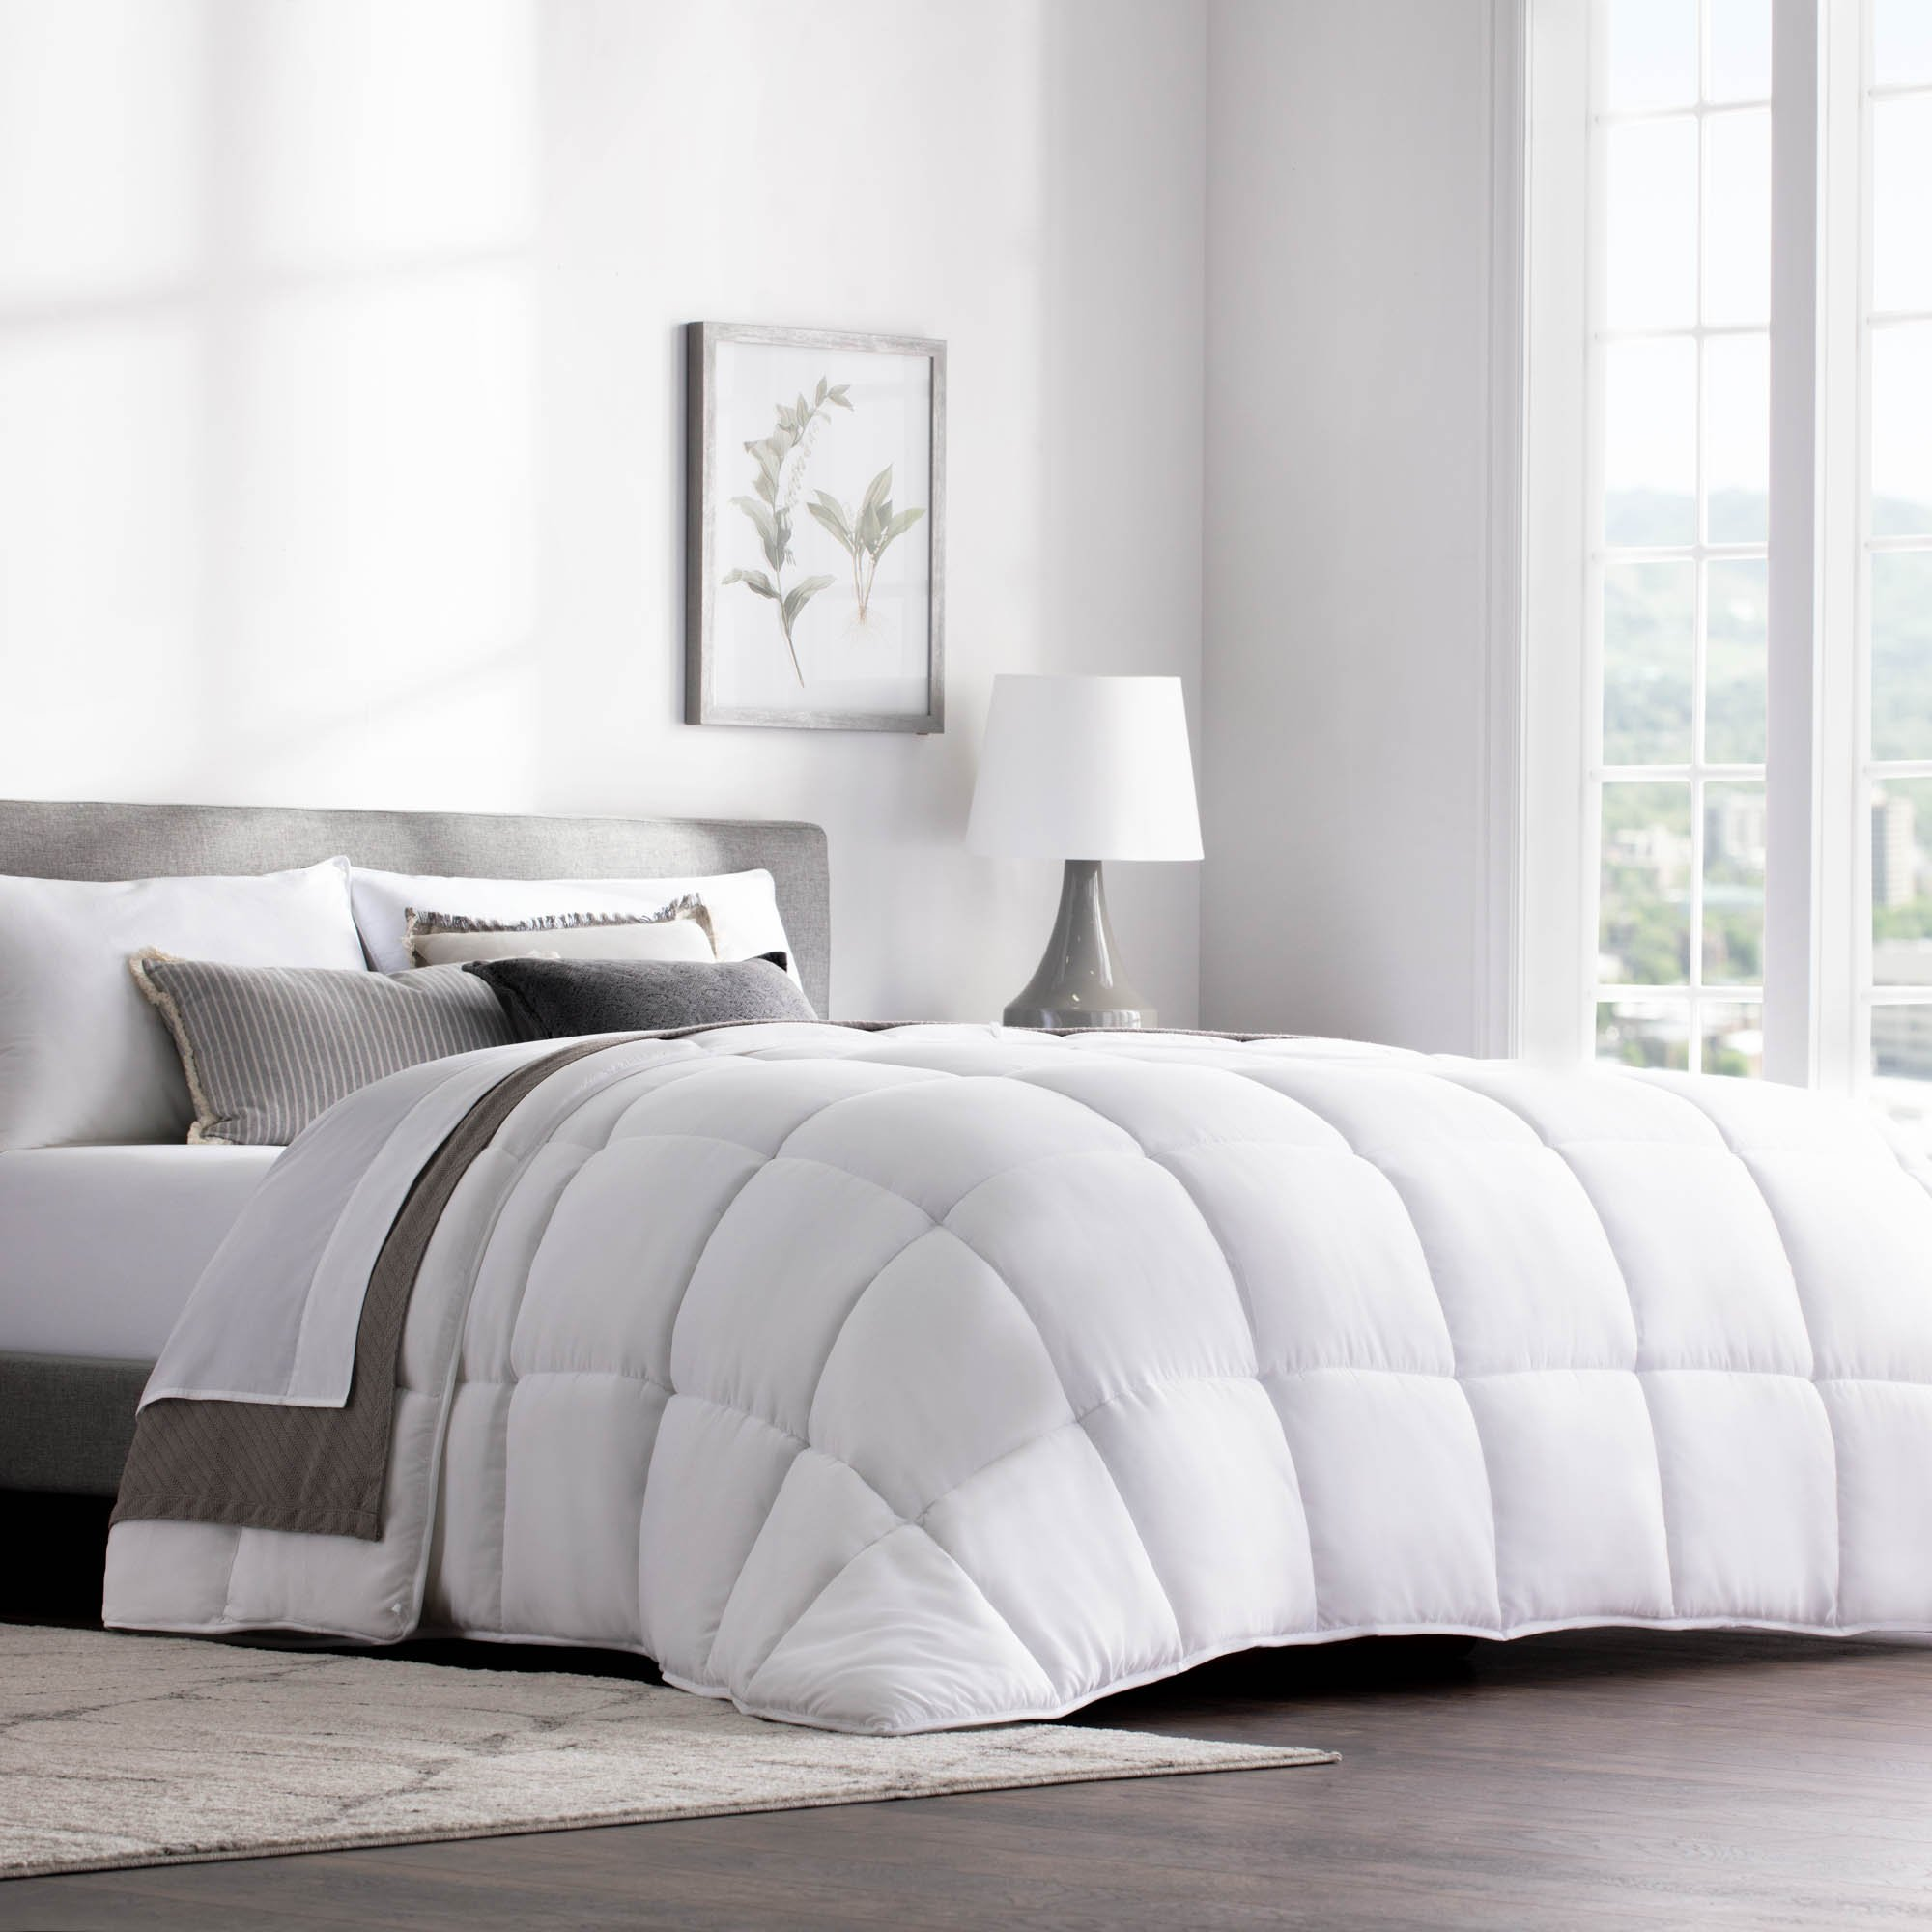 WEEKENDER Quilted Down Alternative Hotel-Style Comforter - Use as Duvet Insert Stand-Alone Comforter - Hypoallergenic - Great All Seasons - Corner Duvet Tabs - Full - Classic White